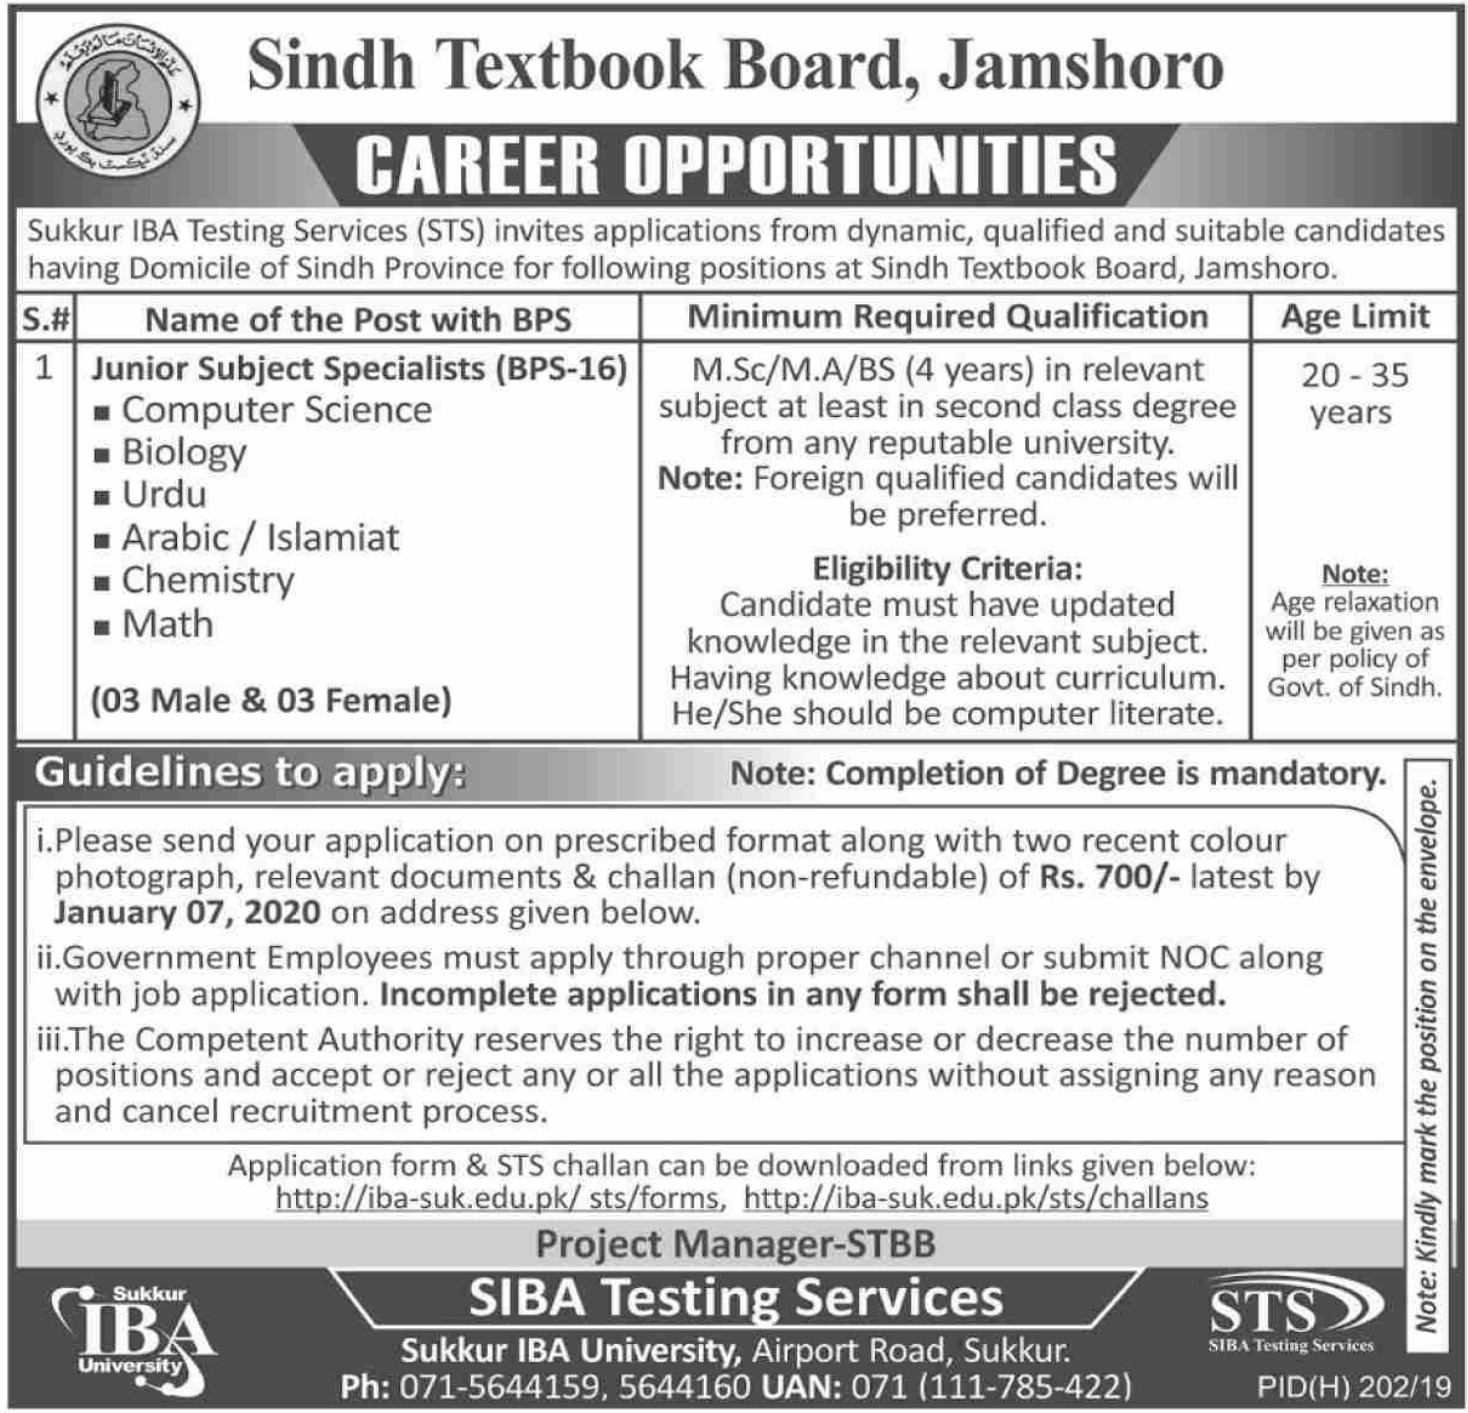 Sindh Textbook Board Jamshoro Jobs 2019 Apply via STS